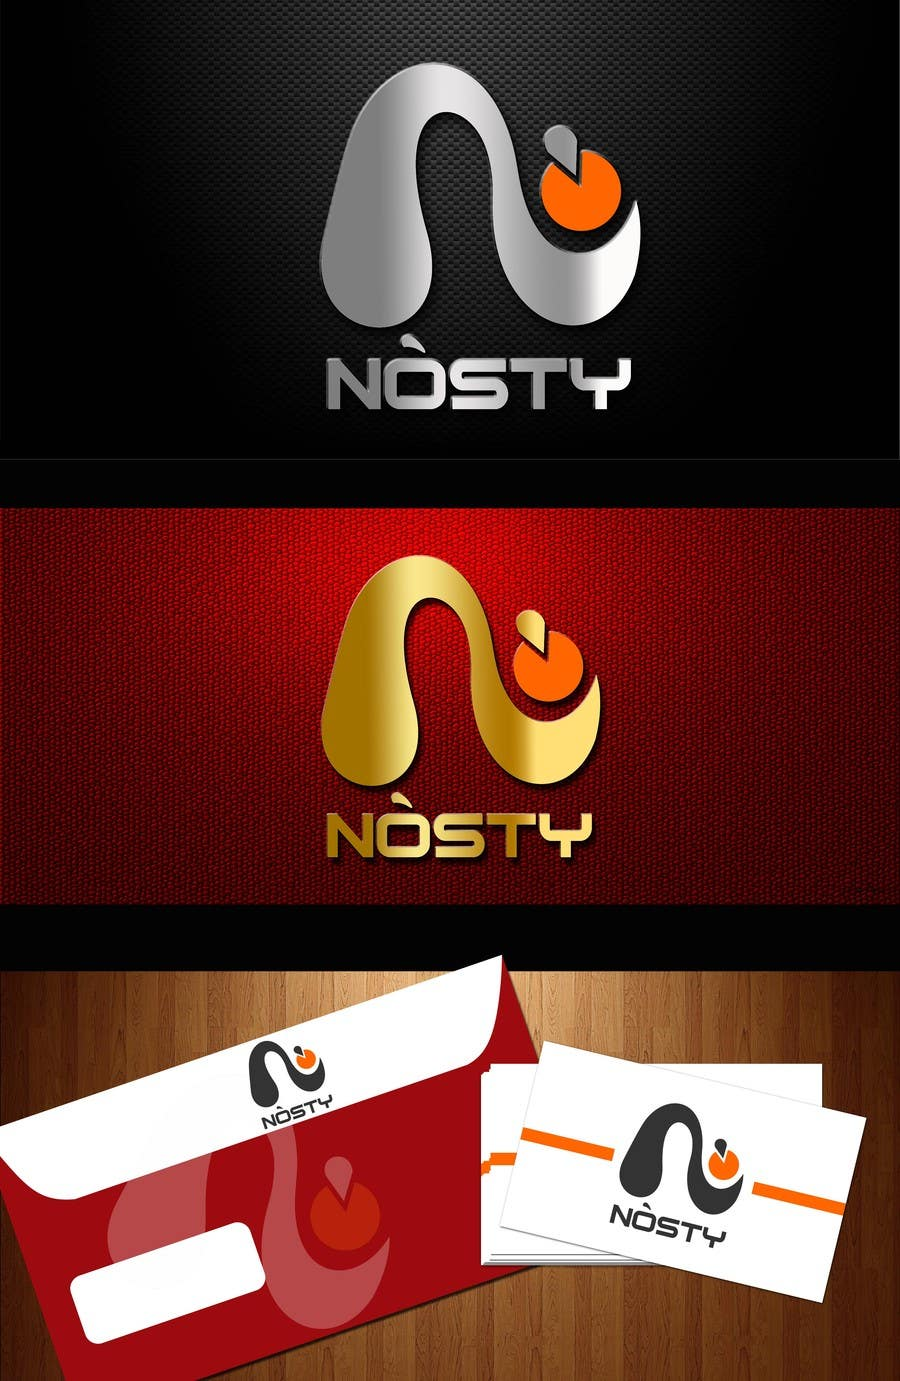 Inscrição nº 161 do Concurso para Logo Design for Nòsty, Nòsty Krew, Nòsty Deejays, Nòsty Events, Nòsty Production, Nòsty Store